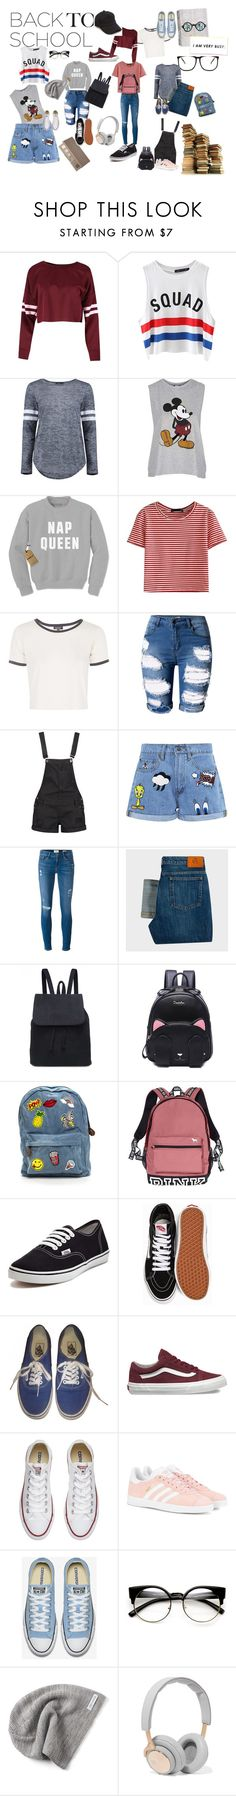 Back To School by vas0an on Polyvore featuring Topshop, WithChic, Boohoo, Chicnova Fashion, Paul Smith, Frame Denim, Paul & Joe Sister, adidas Originals, Vans and Converse